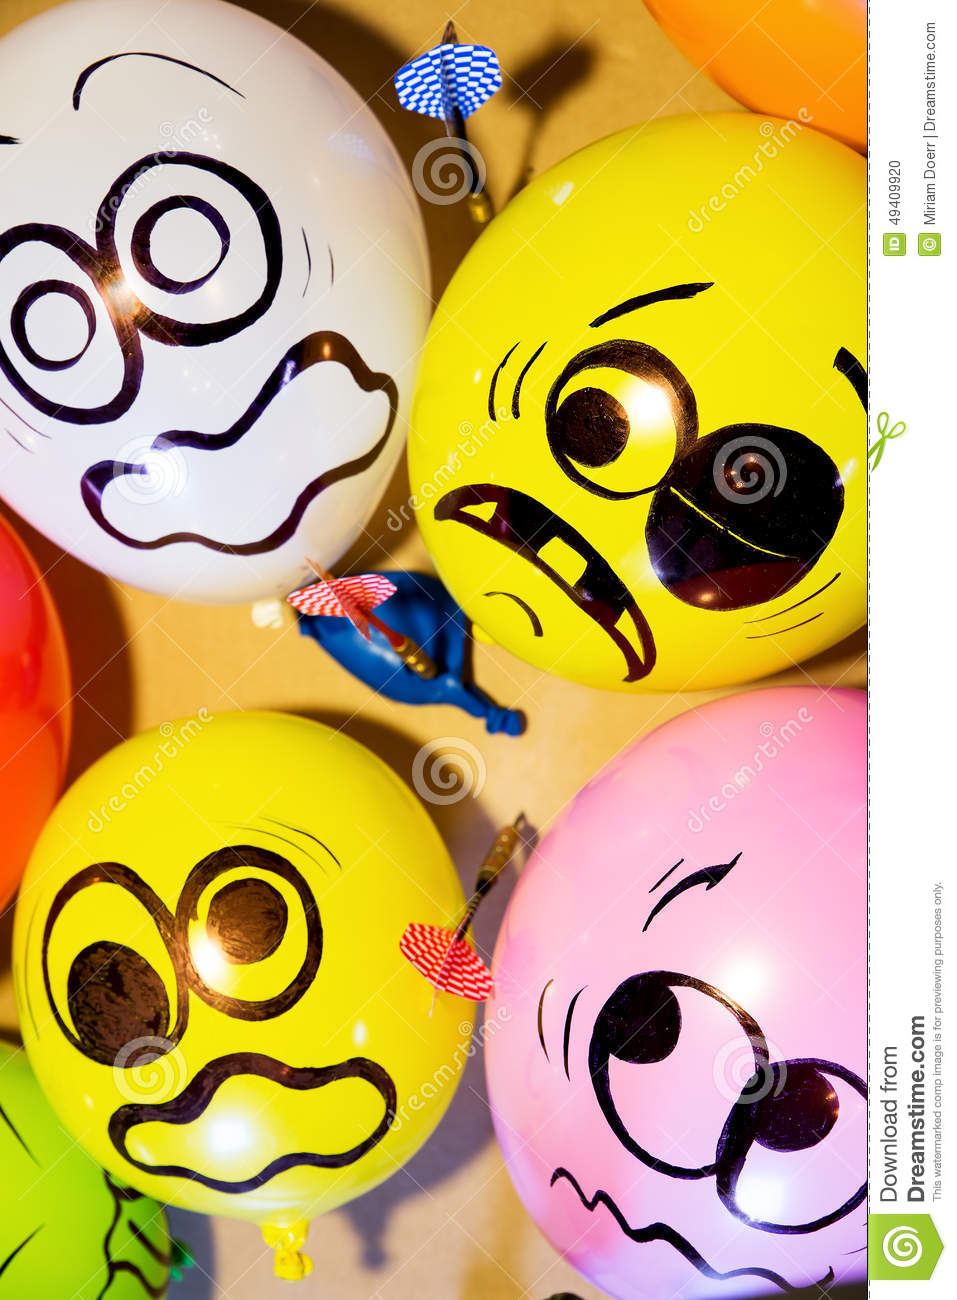 Funny balloon faces - Funny Balloon Faces Are Scared